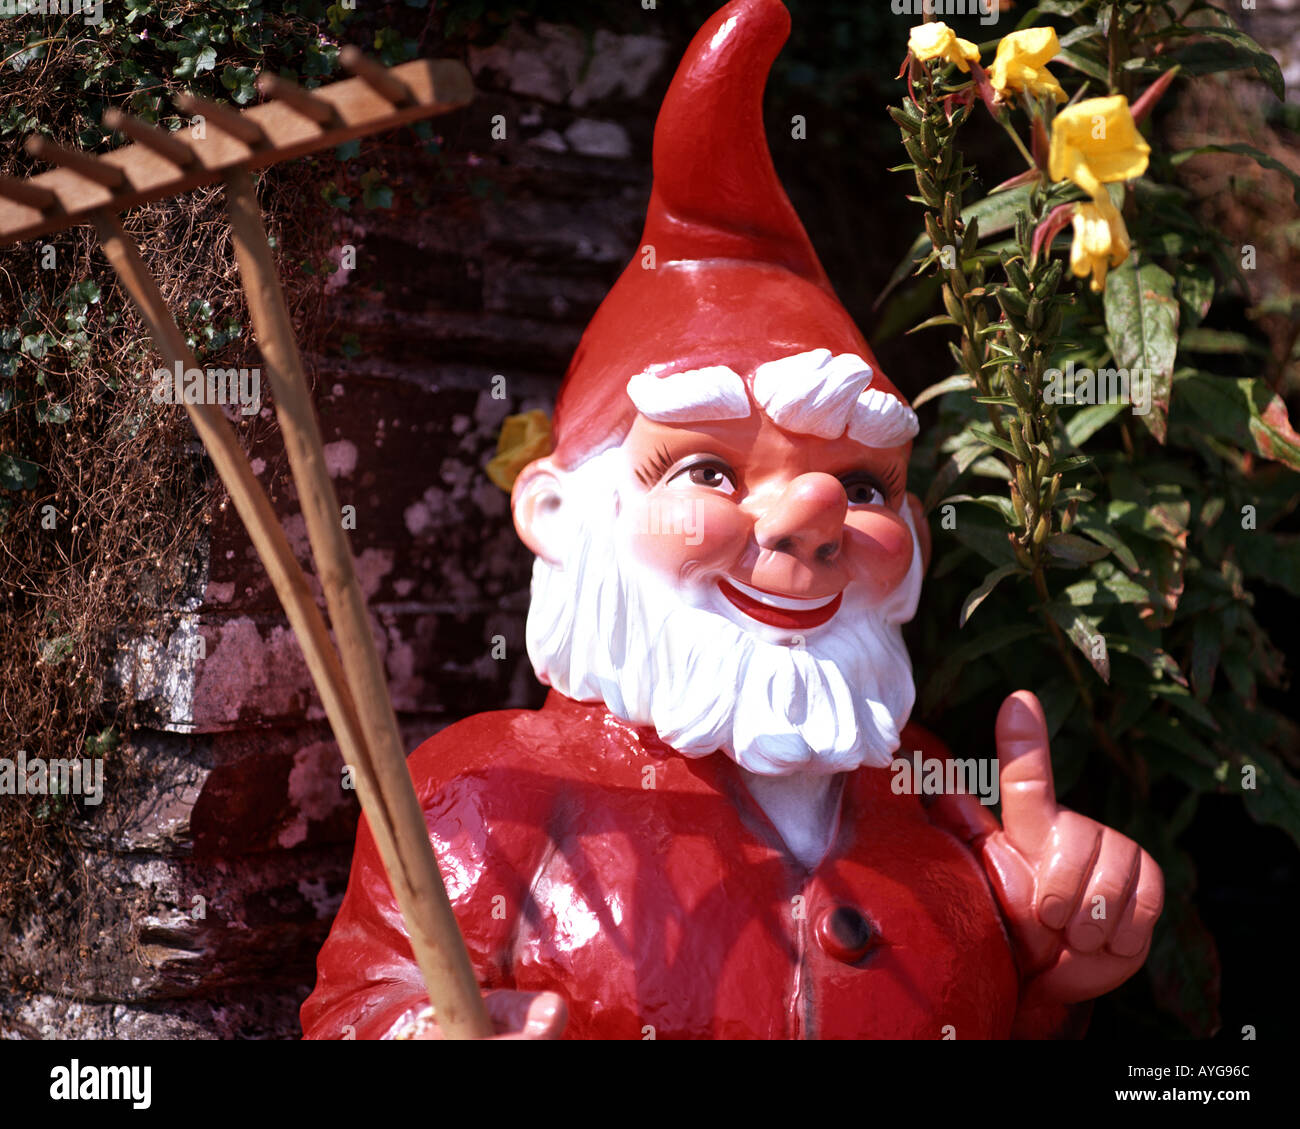 GB - CORNWALL: Detail at the Pixie Shop at Tintagel - Stock Image